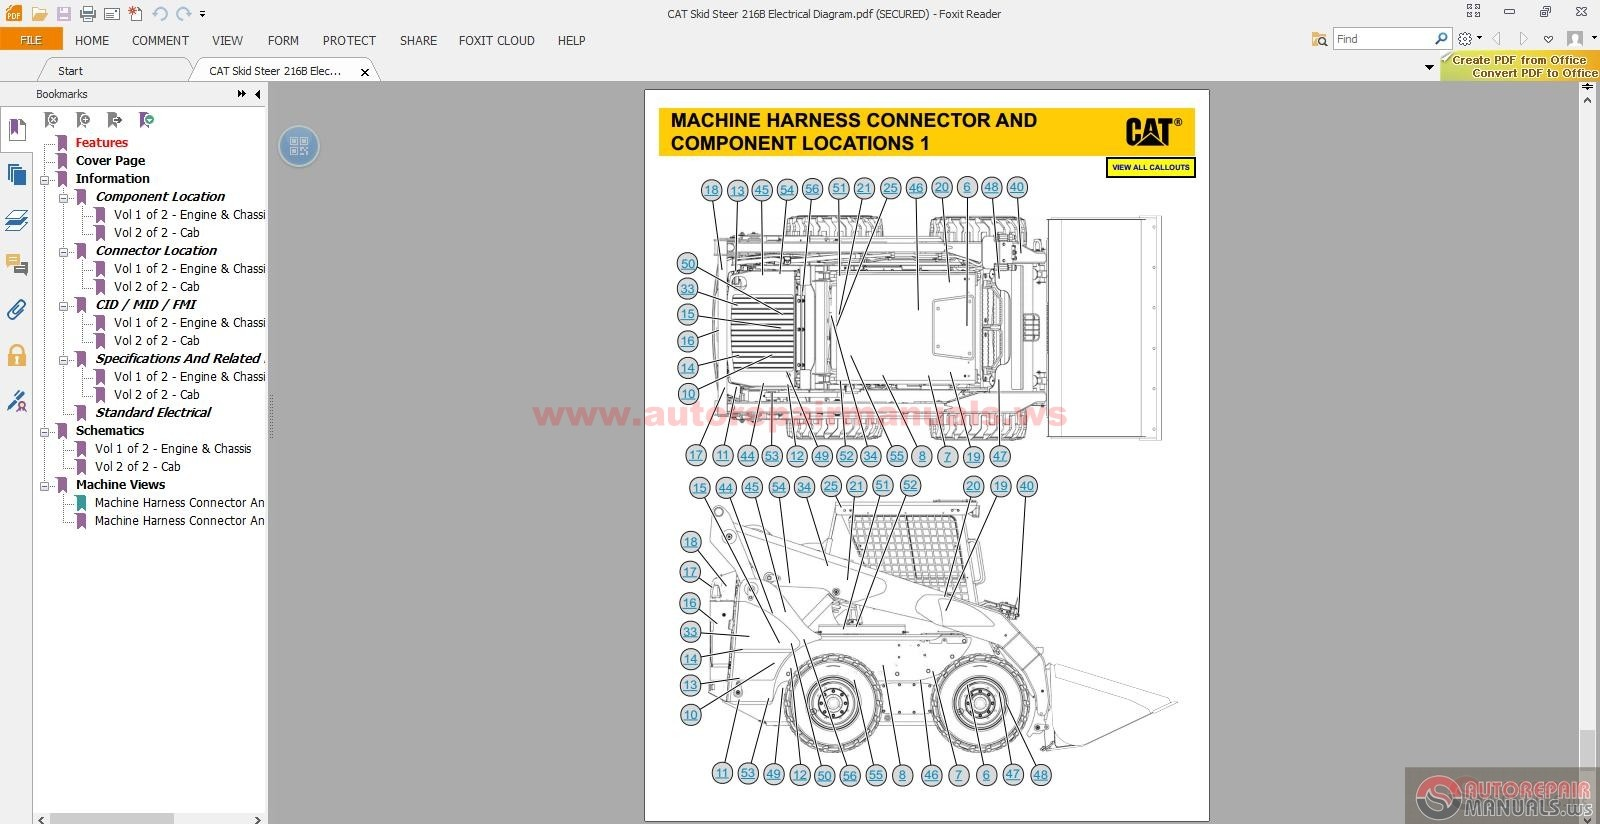 cat wiring diagram cat wiring diagrams cat skid steer 216b electrical diagram 3 cat wiring diagram cat skid steer 216b electrical diagram 3